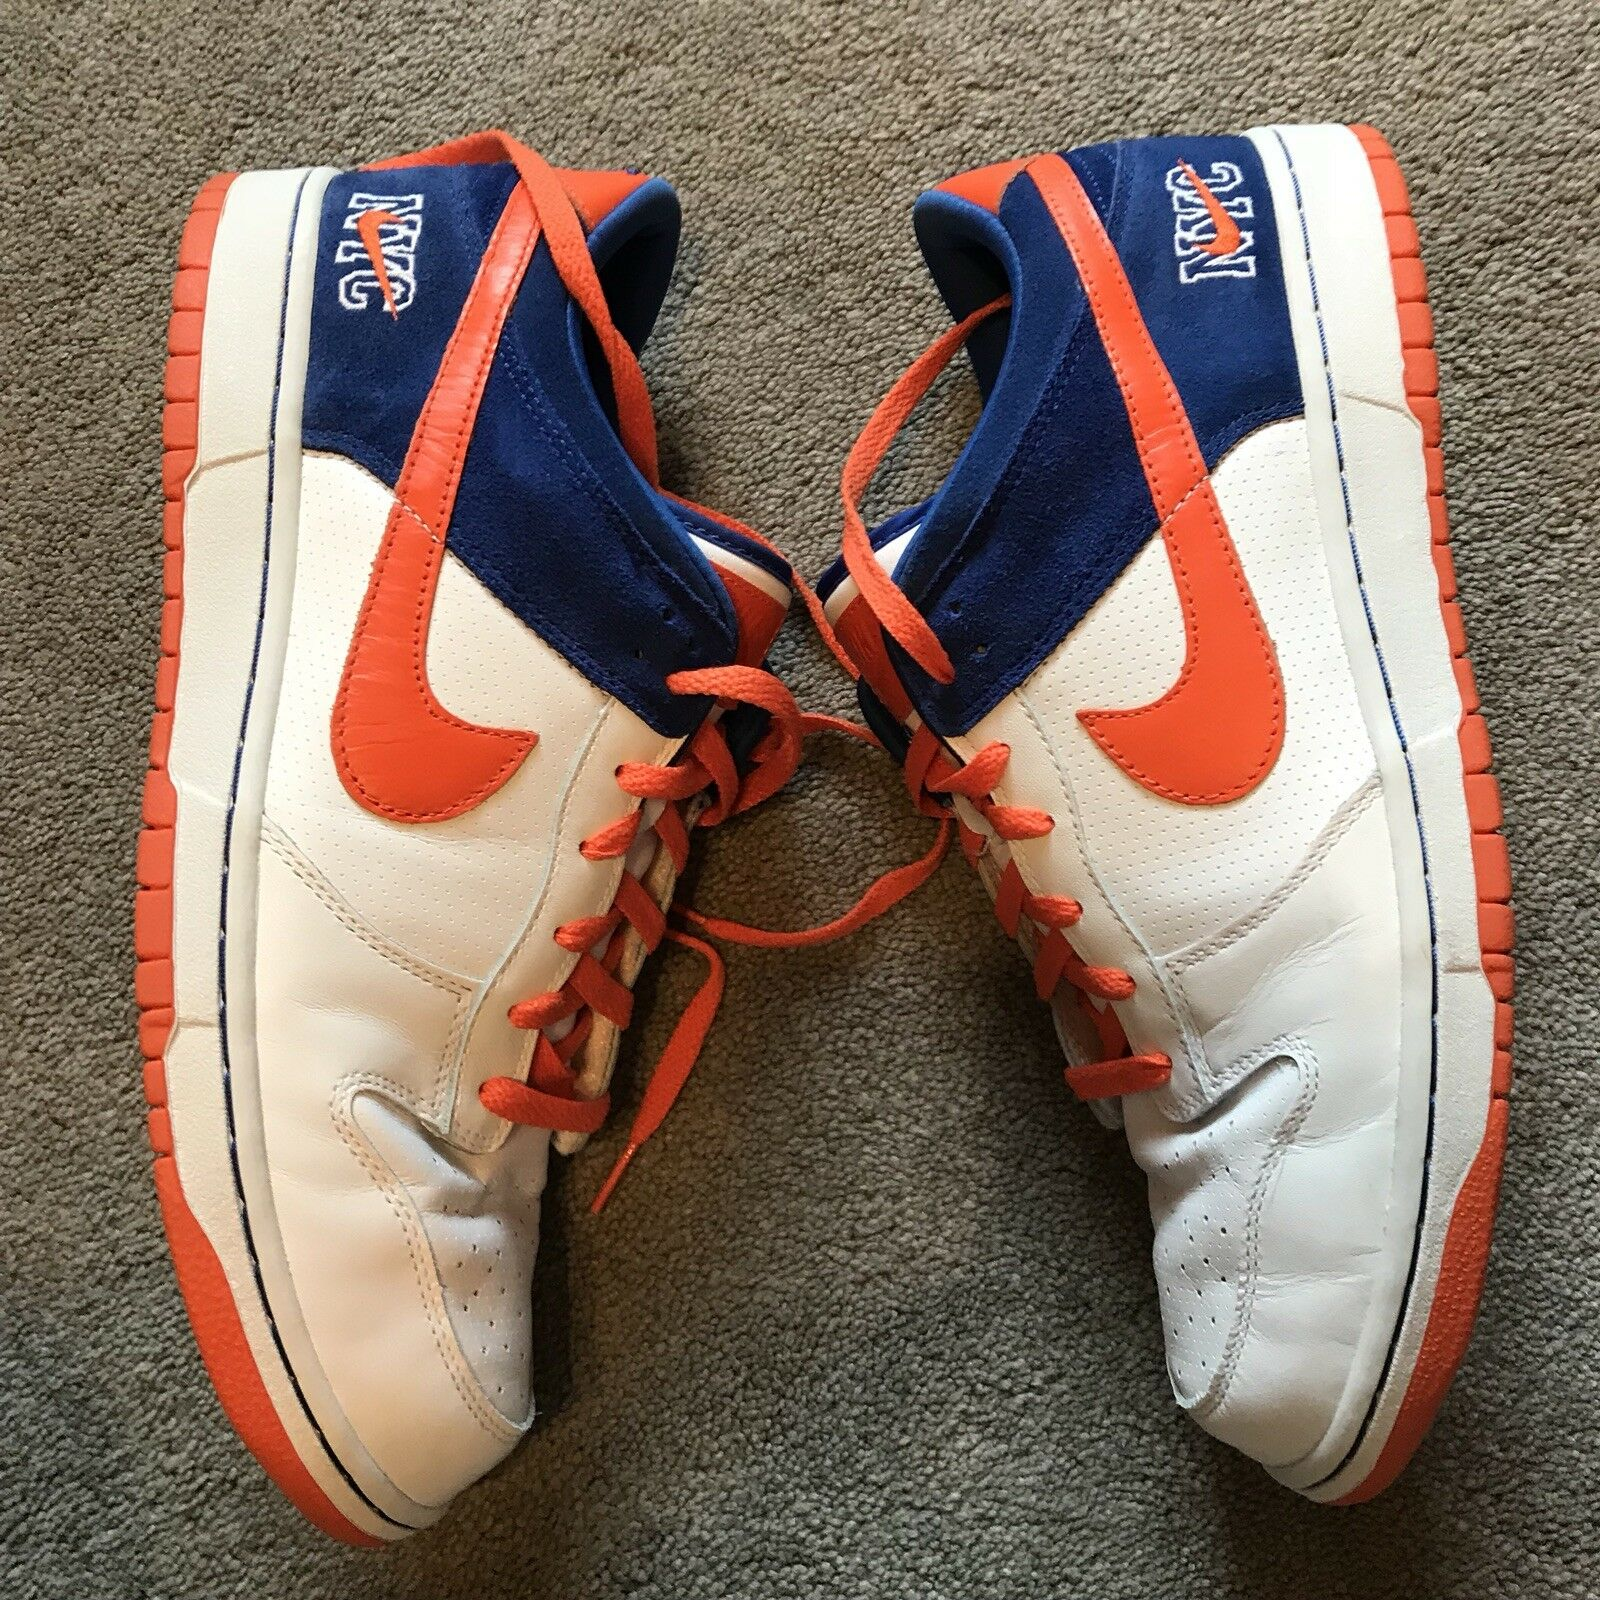 Nike Dunk Low Premium New York Mets Size 12 House Of Hoops Exclusive